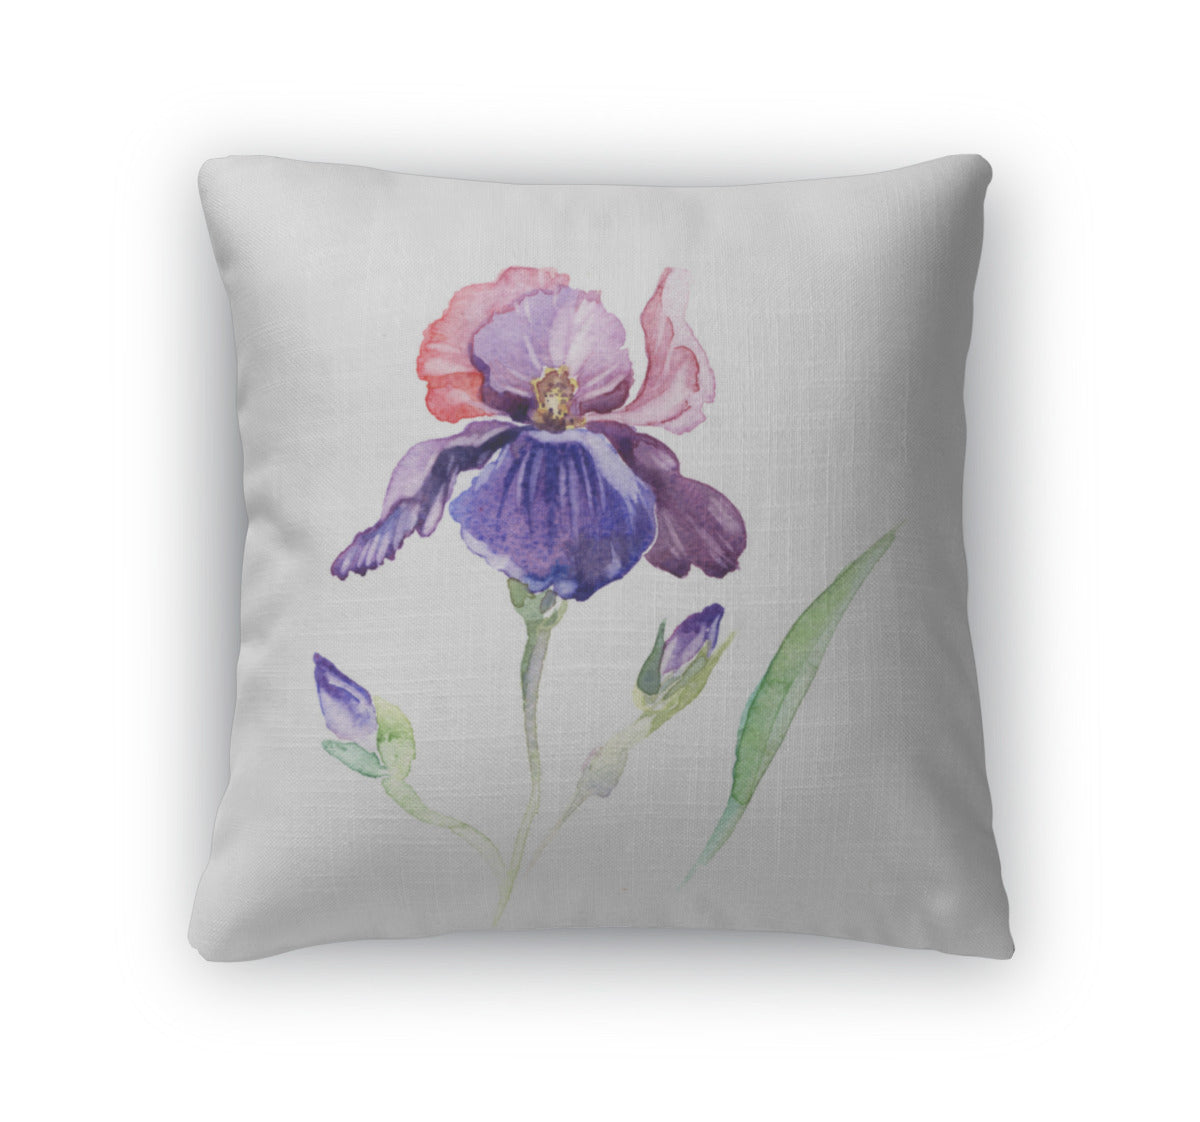 Throw Pillow, The Iris Flowers Watercolor Isolated - fashionbests